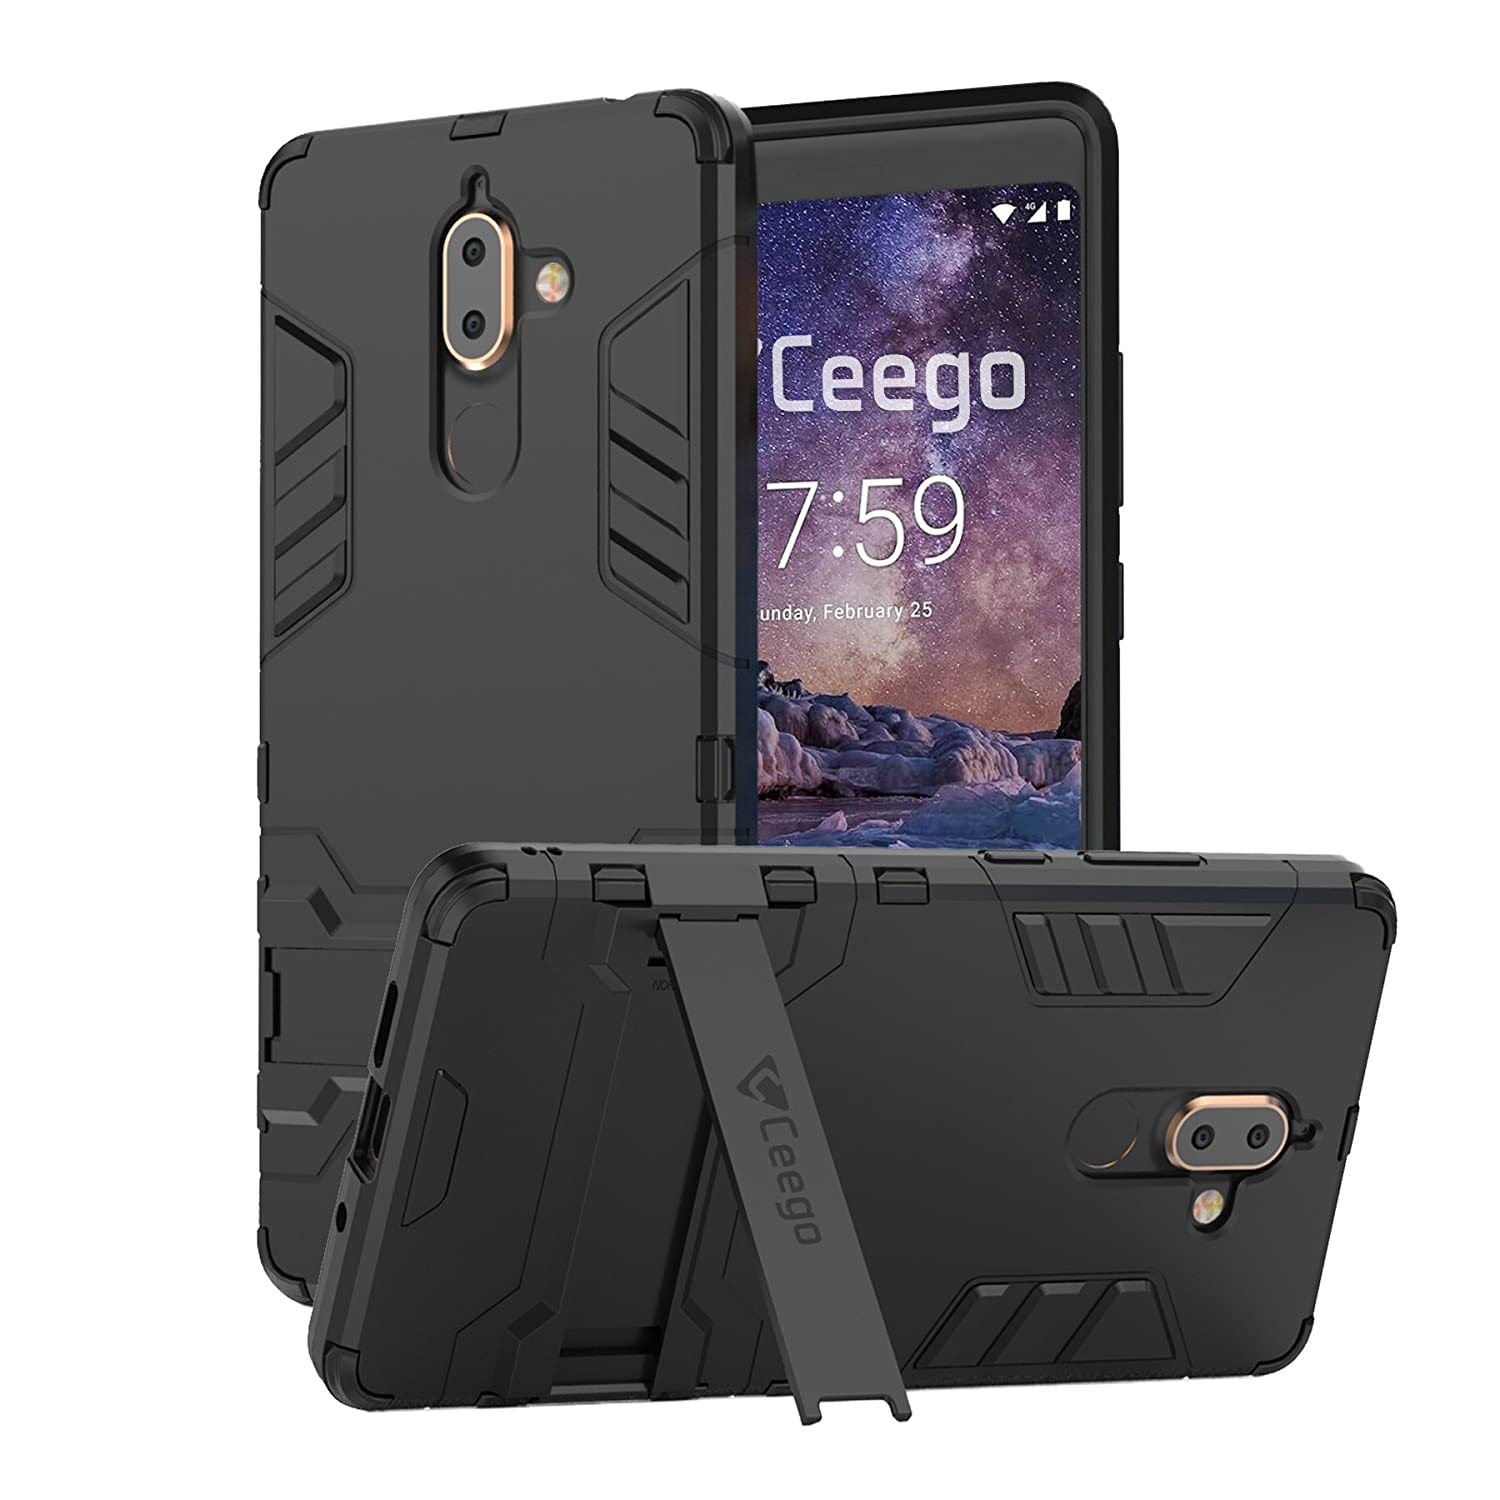 uk availability 2c837 ccb7b Ceego Back Cover for Nokia 7 Plus - Stealth Defence Back Case for Nokia 7  Plus [with Shock Protection & Built-in Stand] – Matte Black